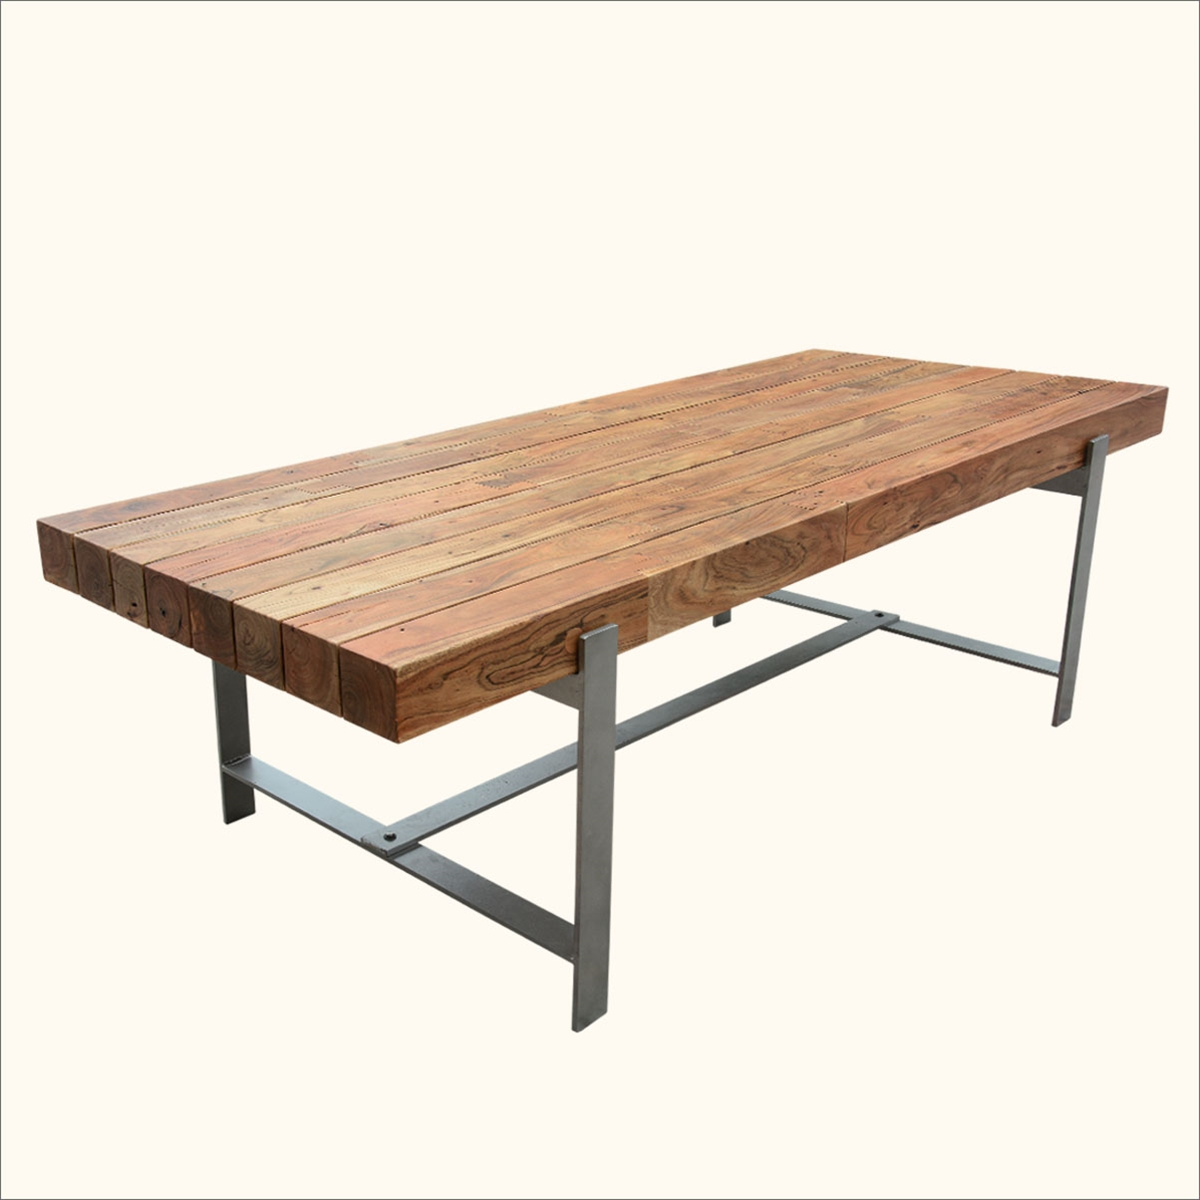 Unique industrial wood modern rustic iron base factory for Unusual dining table bases